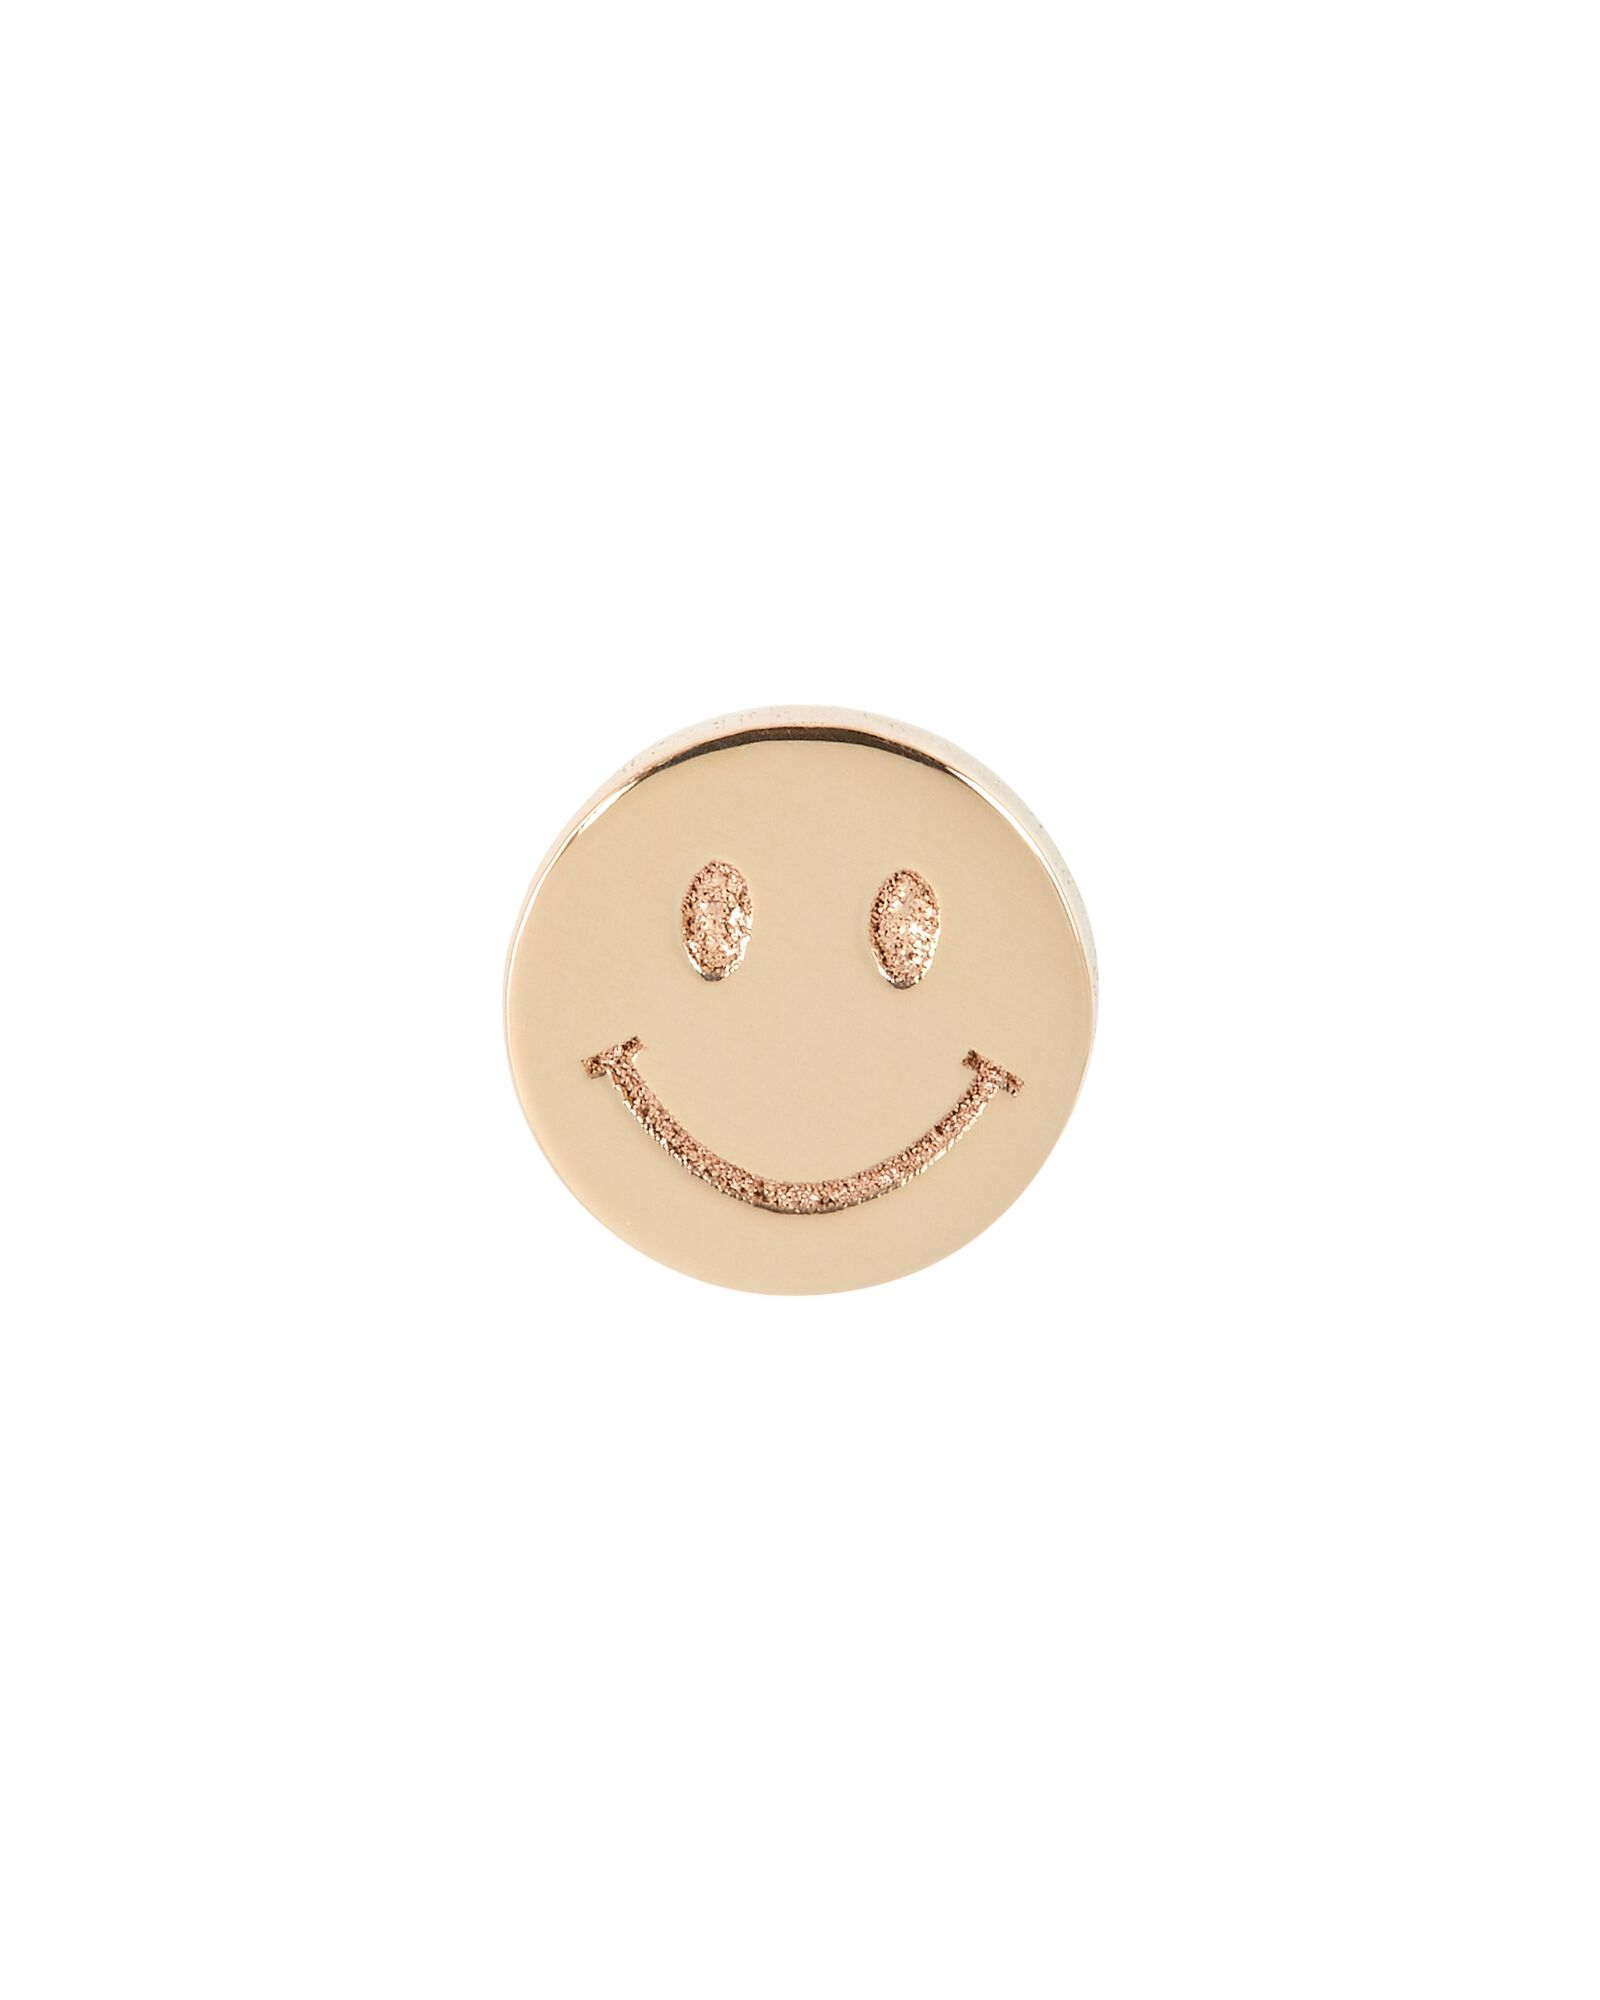 Itty Bitty Smiley Face Single Stud Earring, GOLD, hi-res